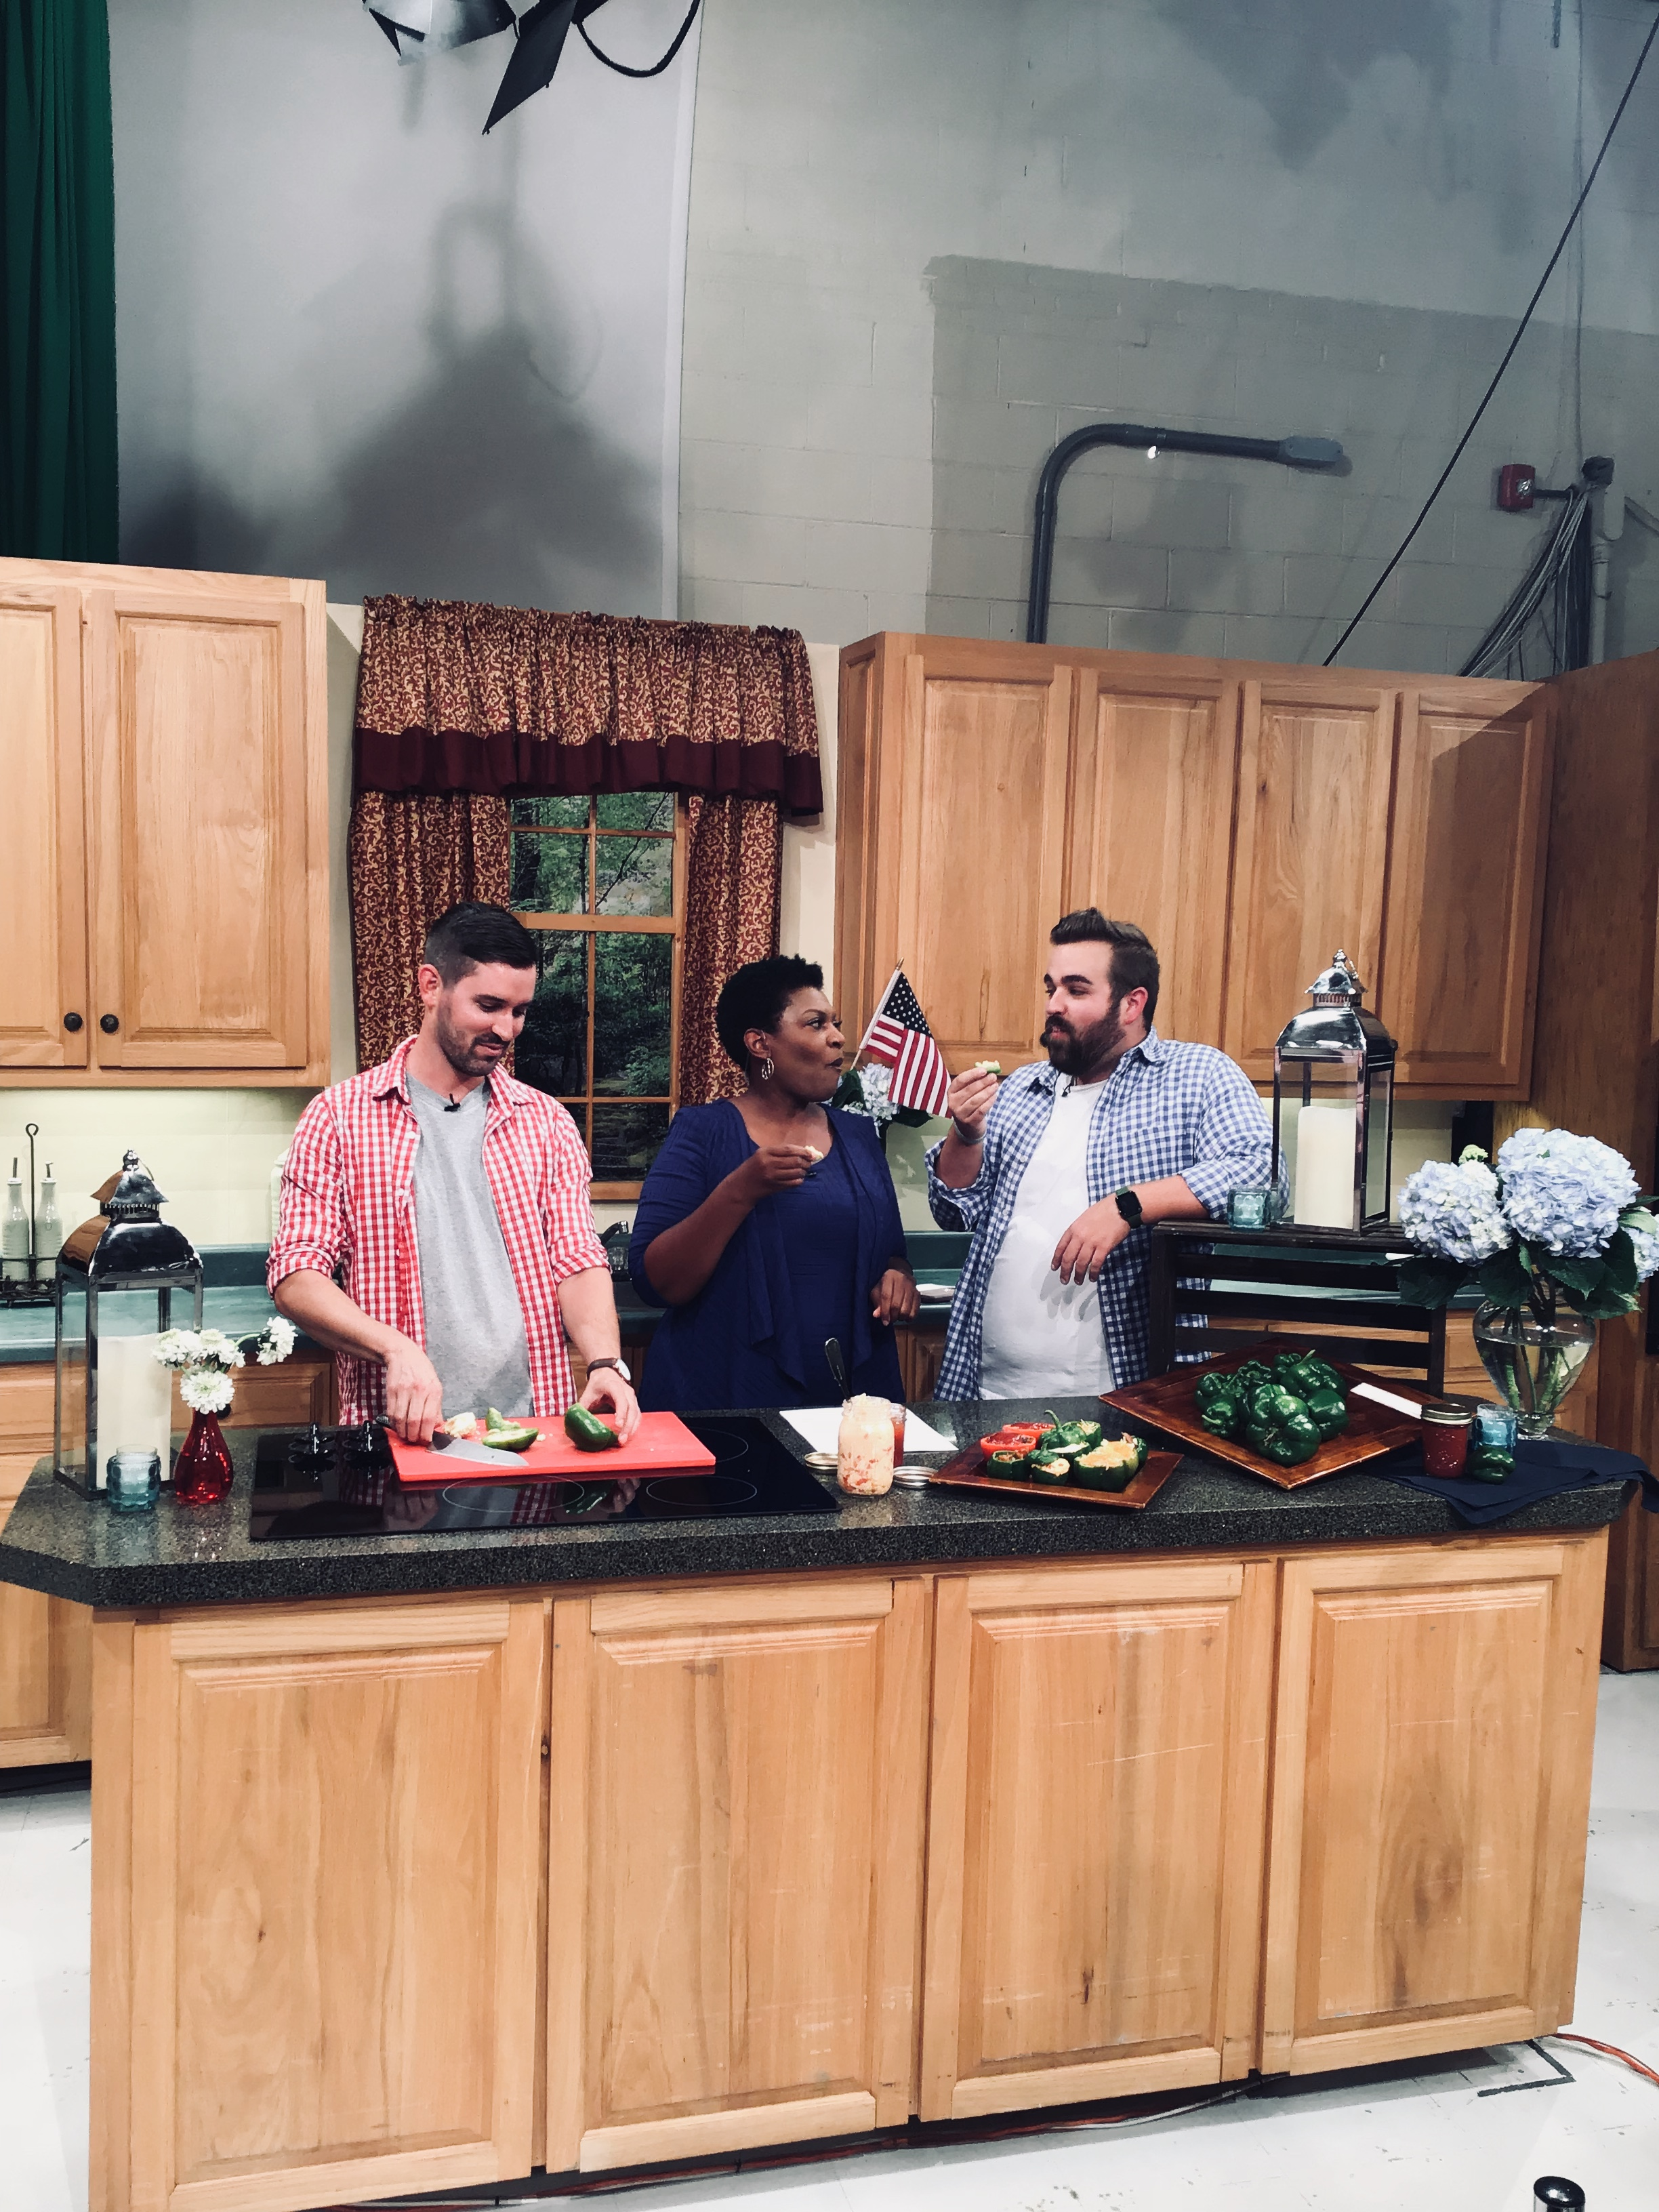 WSFA 12 News - Tim Essary, co-owner of Cahawba House, went on the WSFA  12 News set showing the best eats for Independence Day. Tim prepared peppers stuffed with our signature pimento cheese and mommas meatloaf.